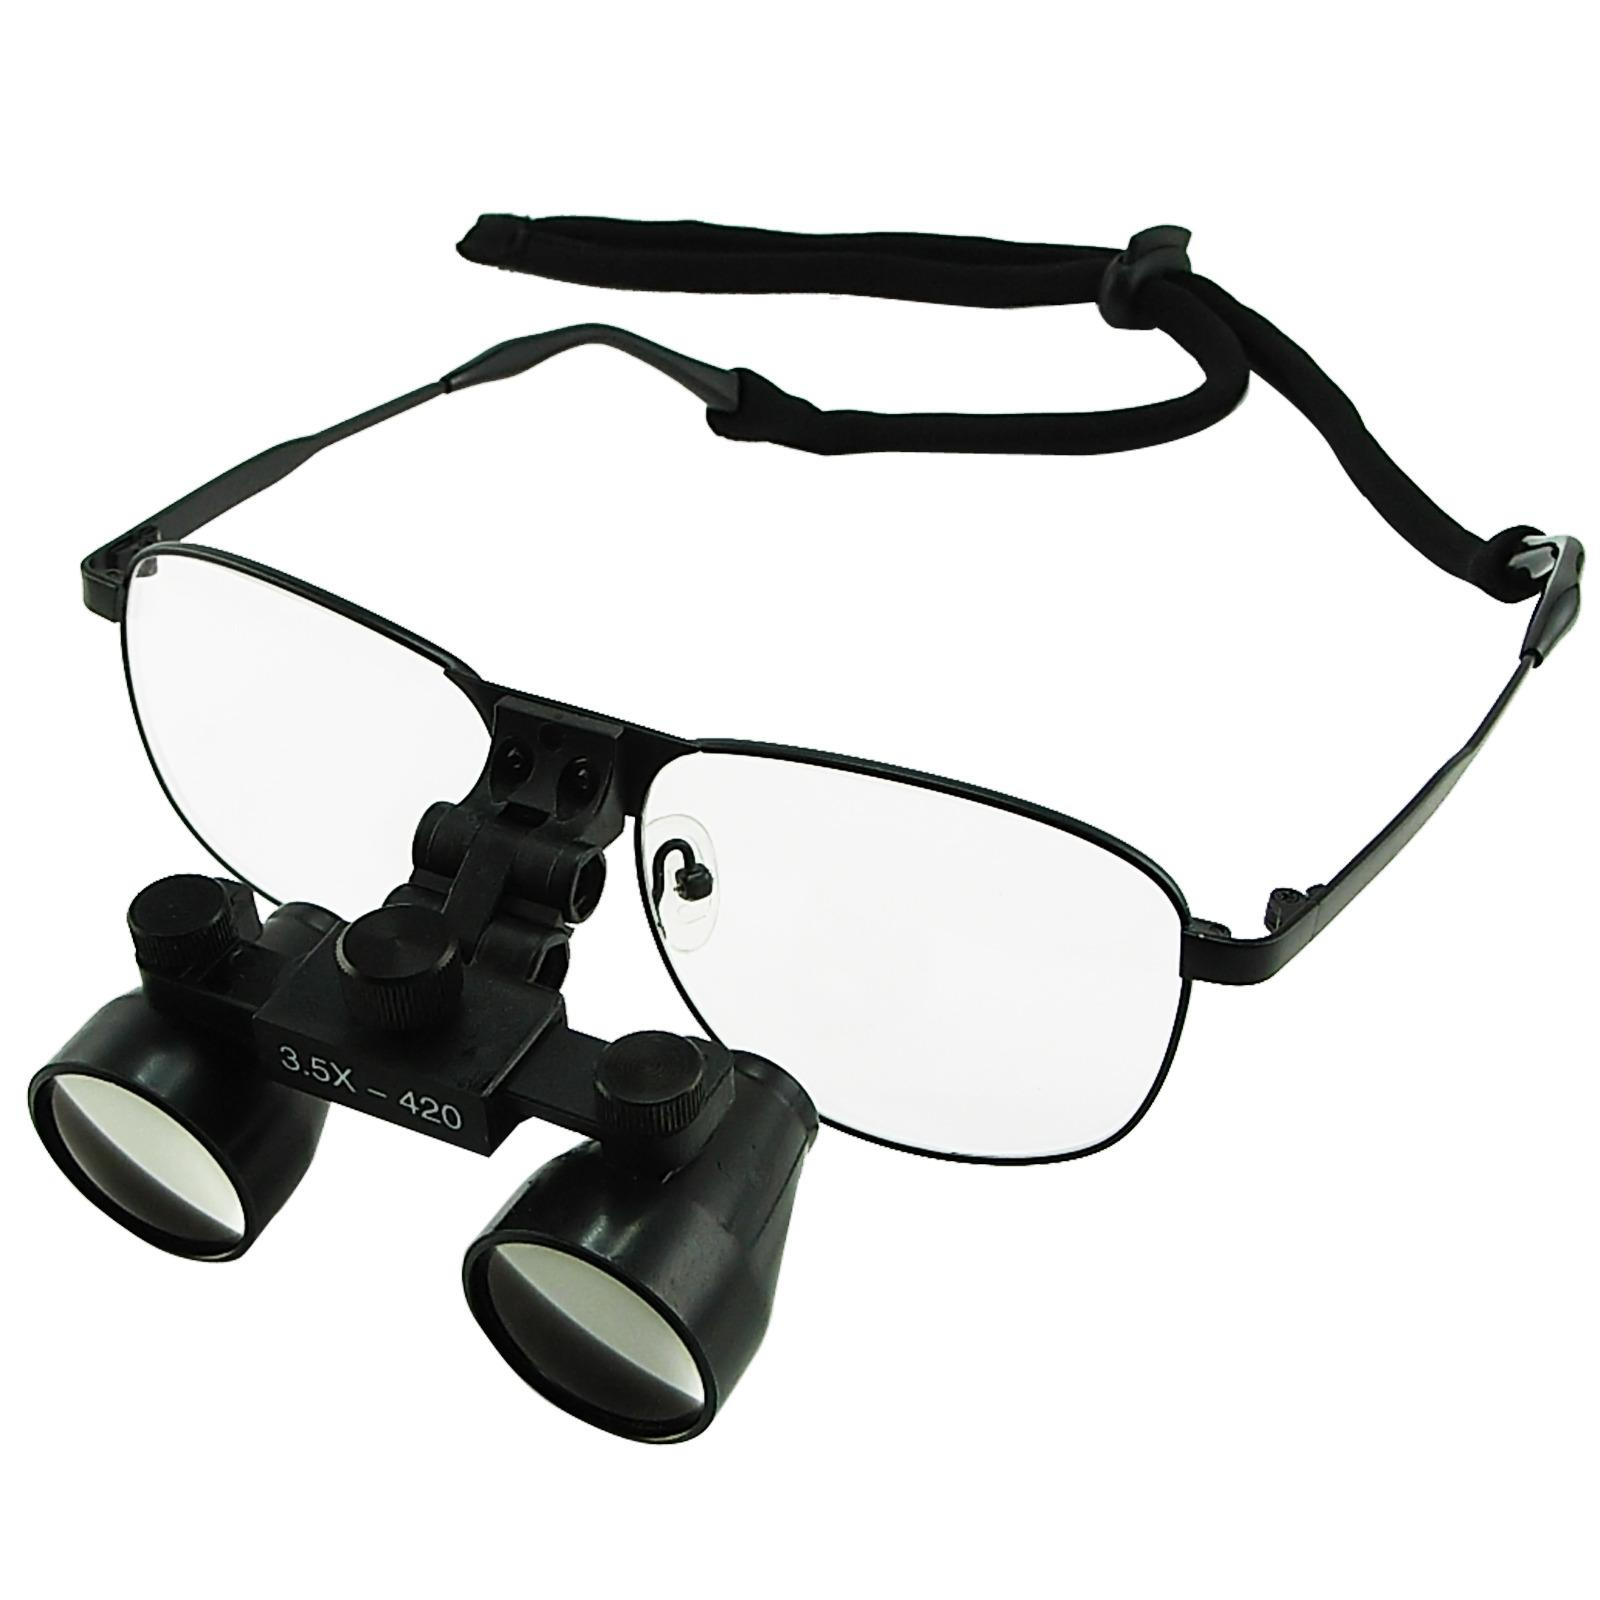 Best Rated Dl 035 Gain Express 3 5X Magnification Dental Loupes Galilean Style Titanium Frame Dental Surgical Medical Binocular 60Mm Field Of View 55Mm Depth Of Field 420Mm Working Distance Flip Up Function Flexible Optical Glass Loupe Dentistry Intl